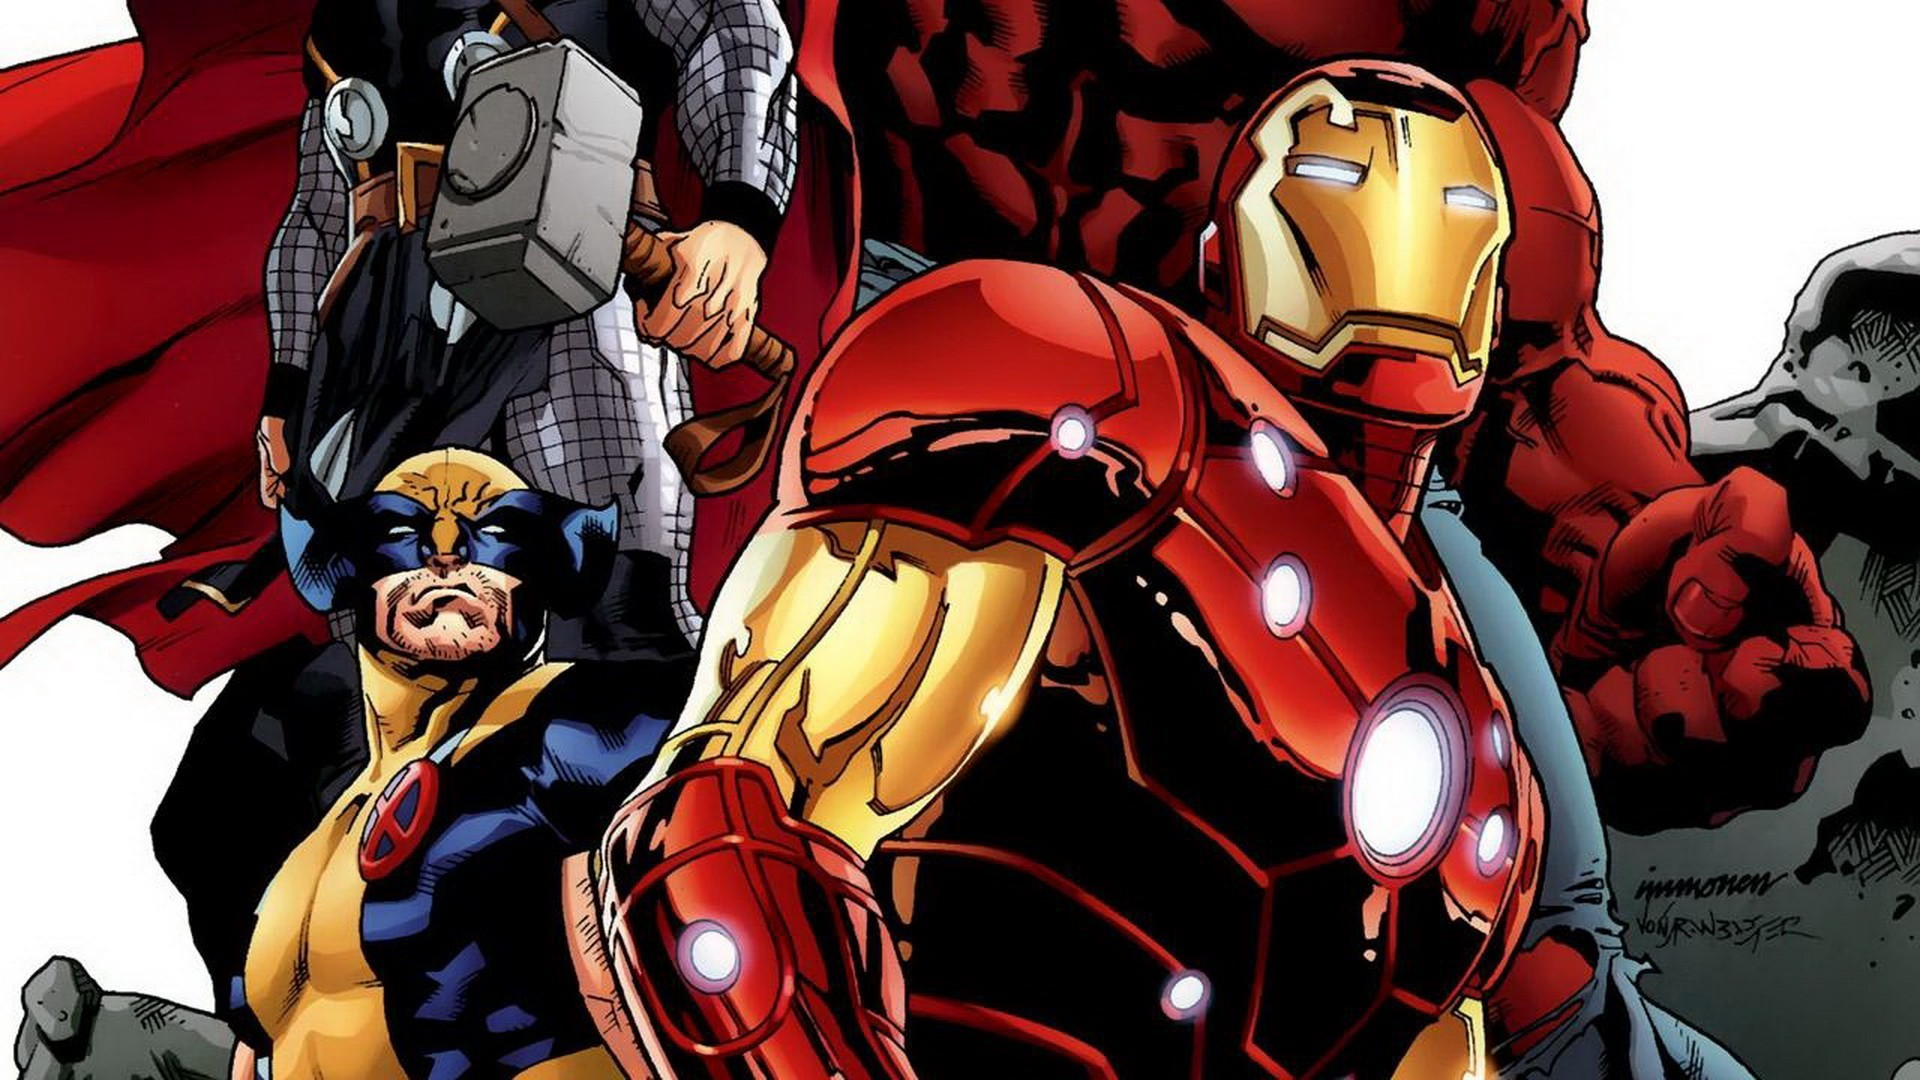 Res: 1920x1080, Iron Man comic cartoon wallpapers PixelsTalk Apps Marvel Iron Man Comic  Wallpapers Android Wickedsa The Death Of Captain Marvel Comic Wallpapers ...